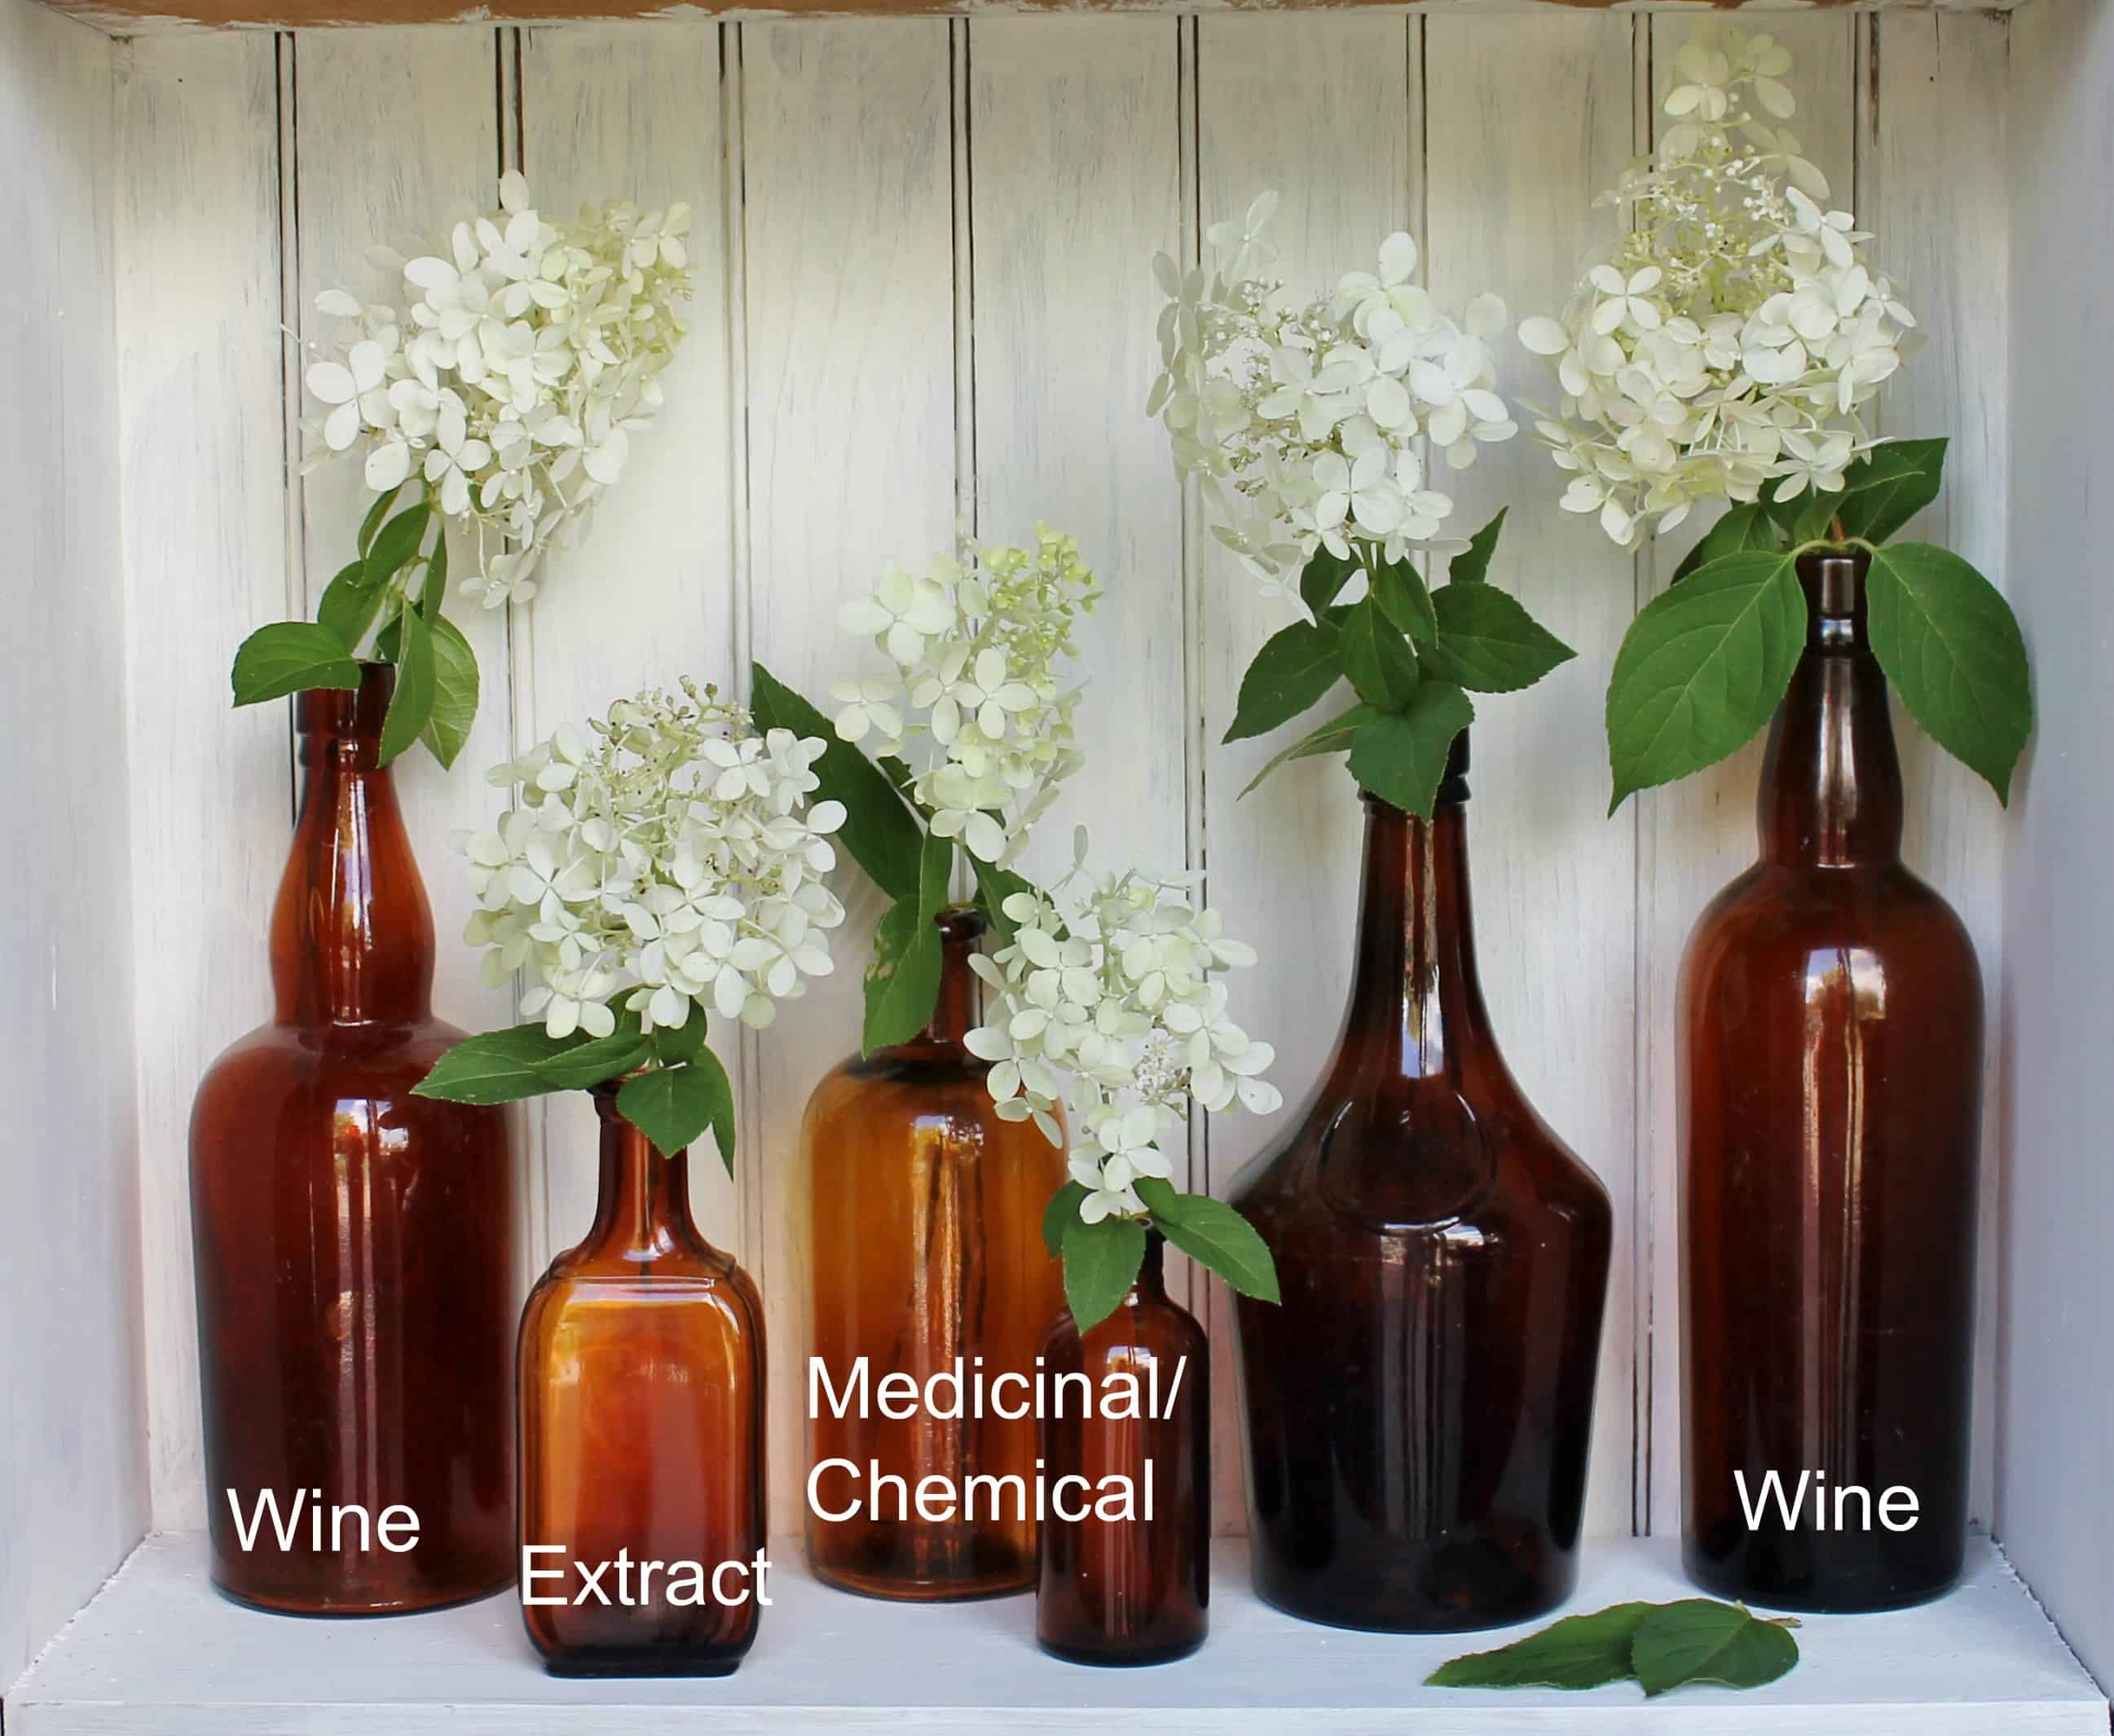 Vintage amber bottles with wines, extract, medicinal